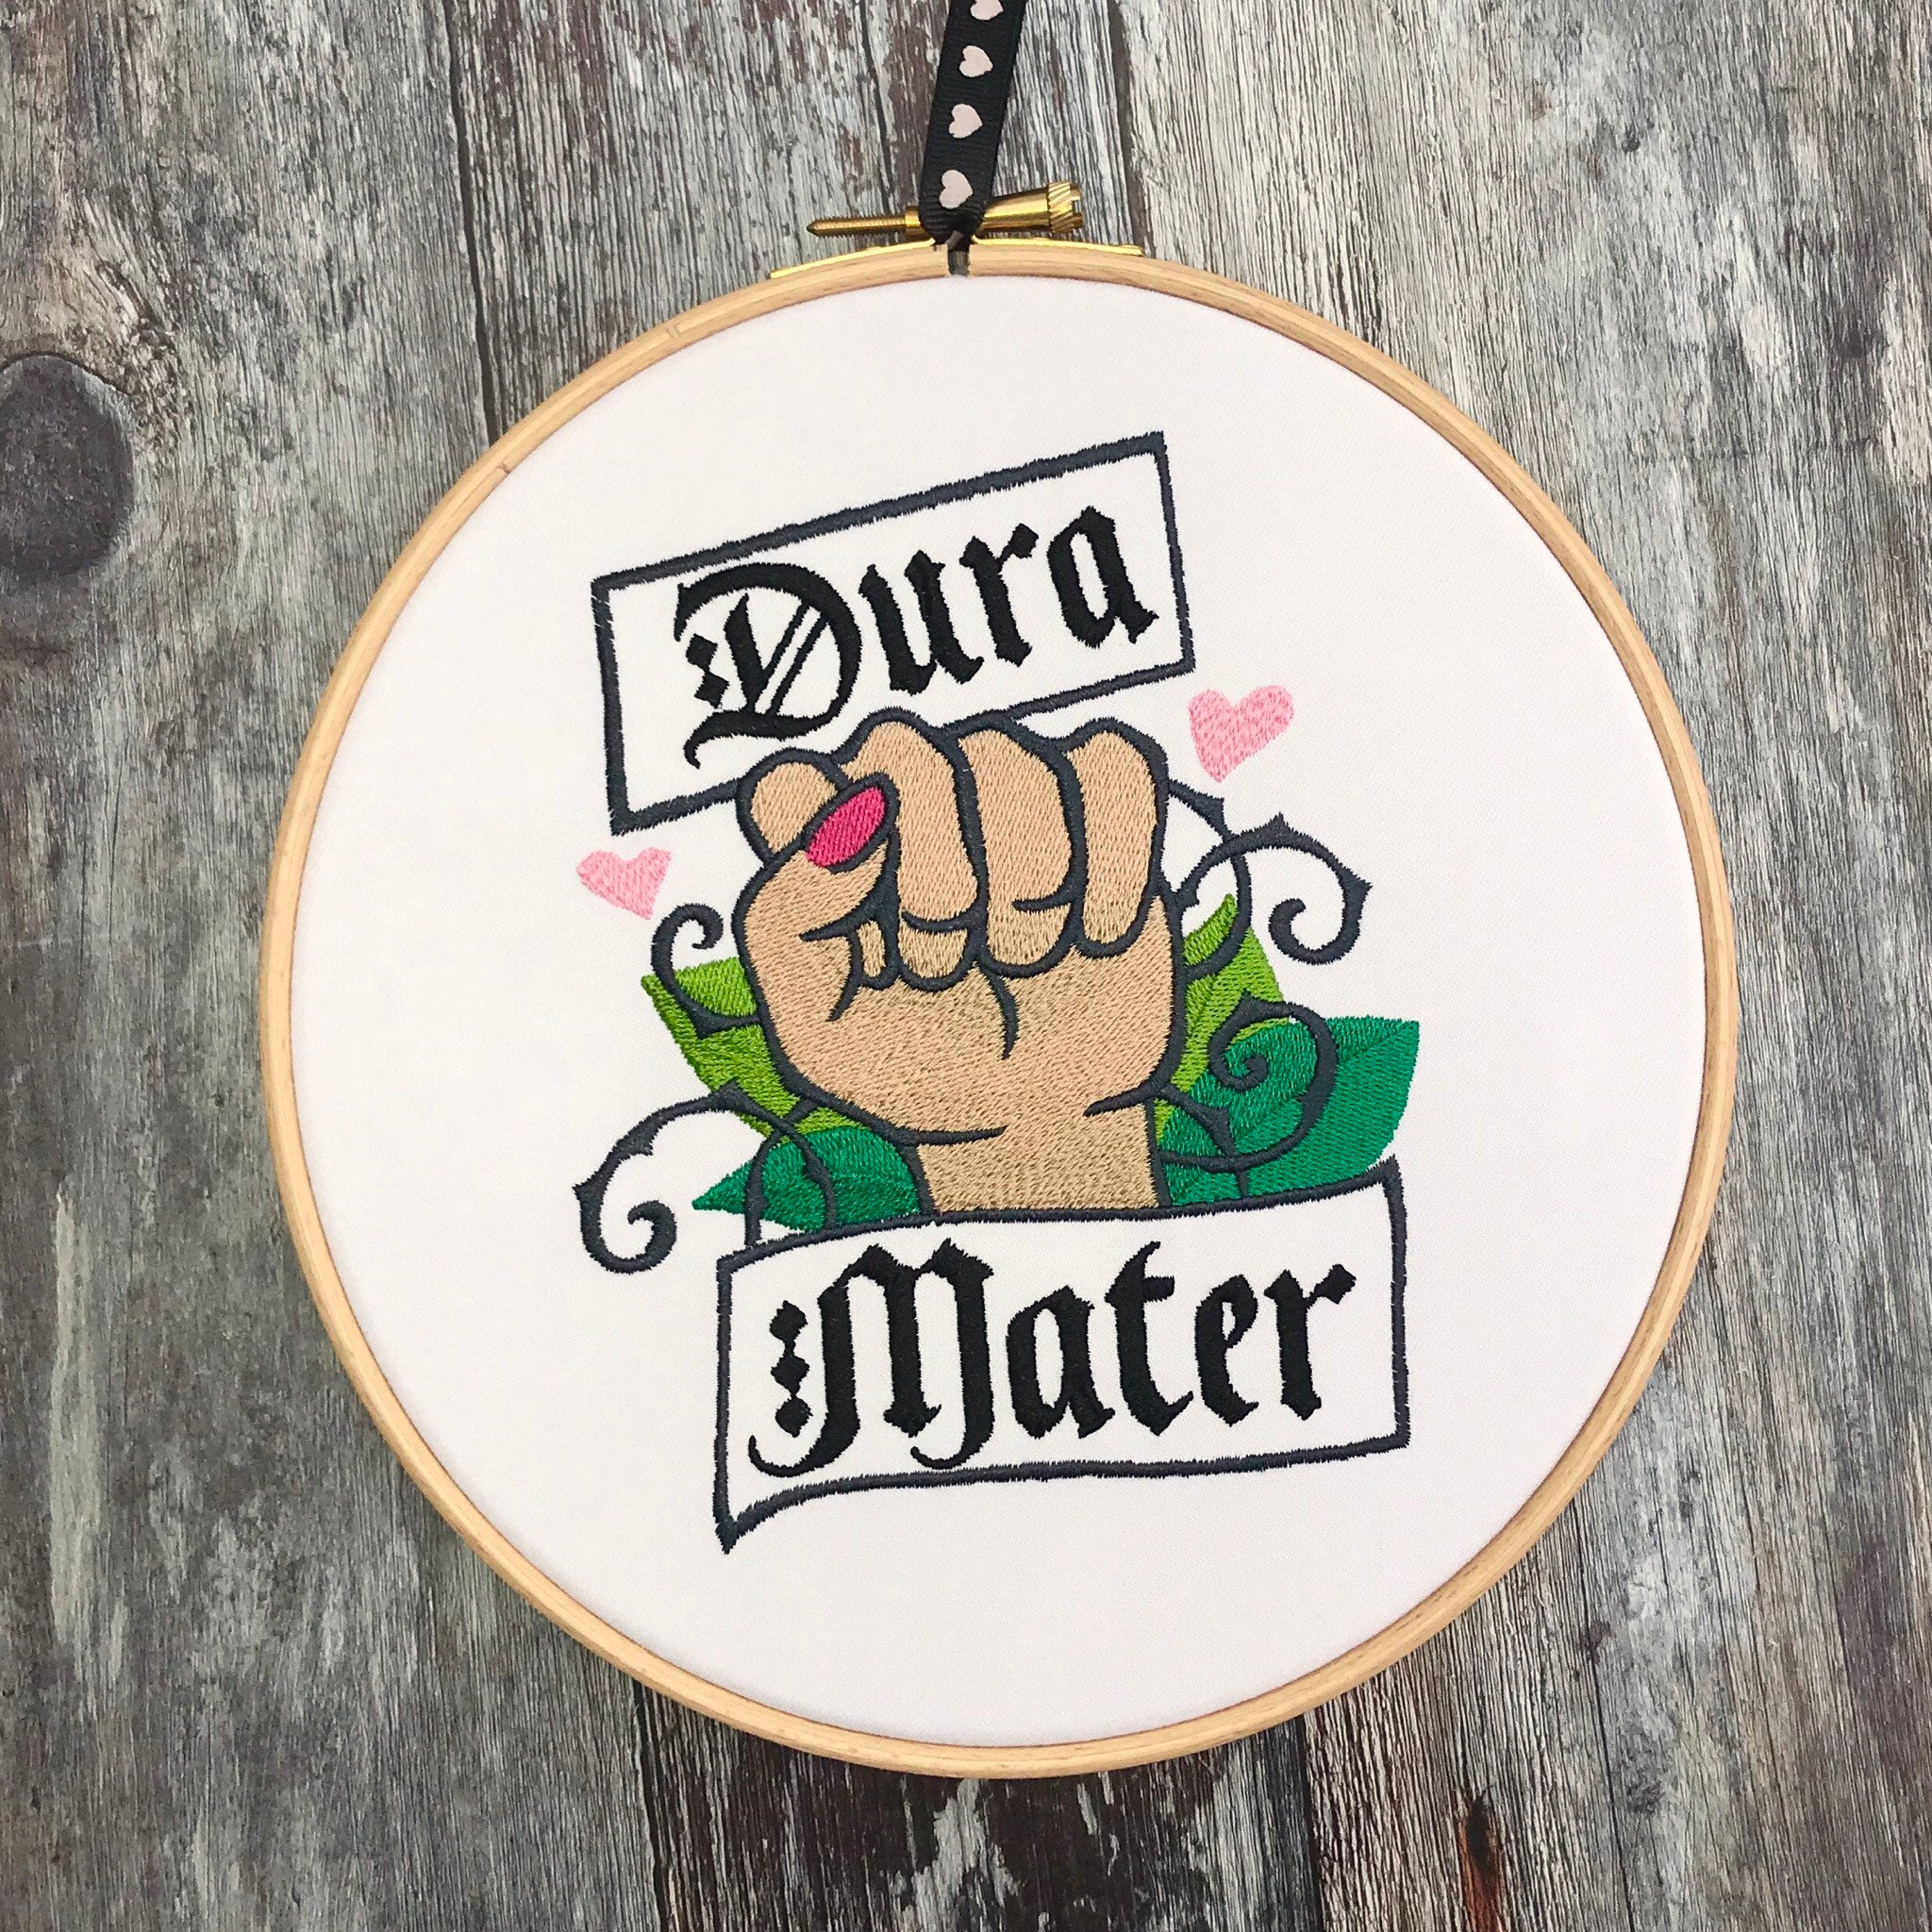 Dura Mater, tough Mother, Embroidery hoop art